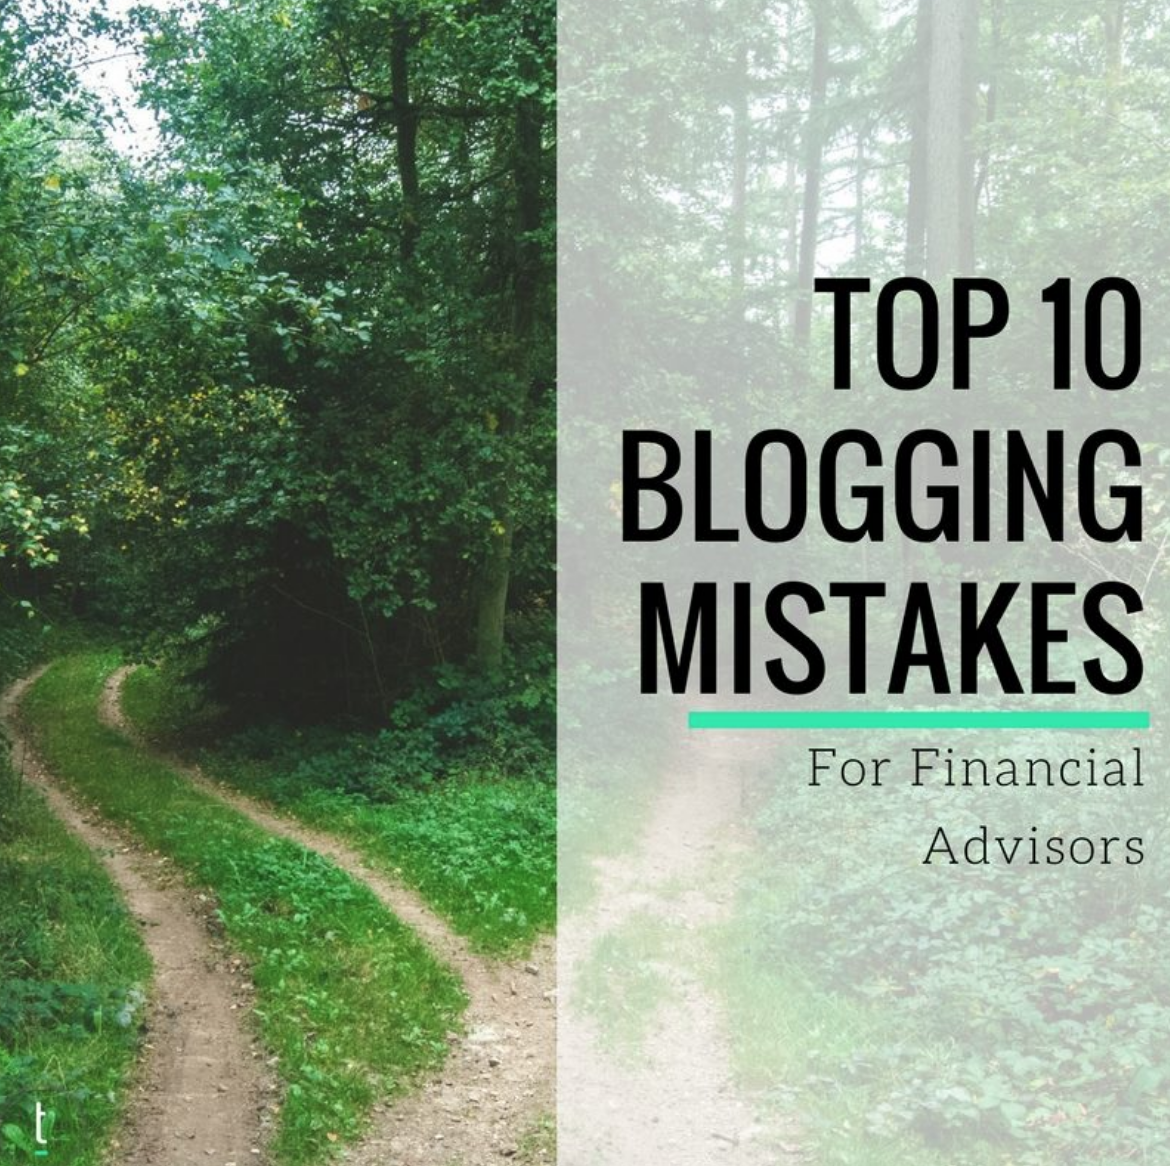 Blogging Mistakes by Financial Advisors